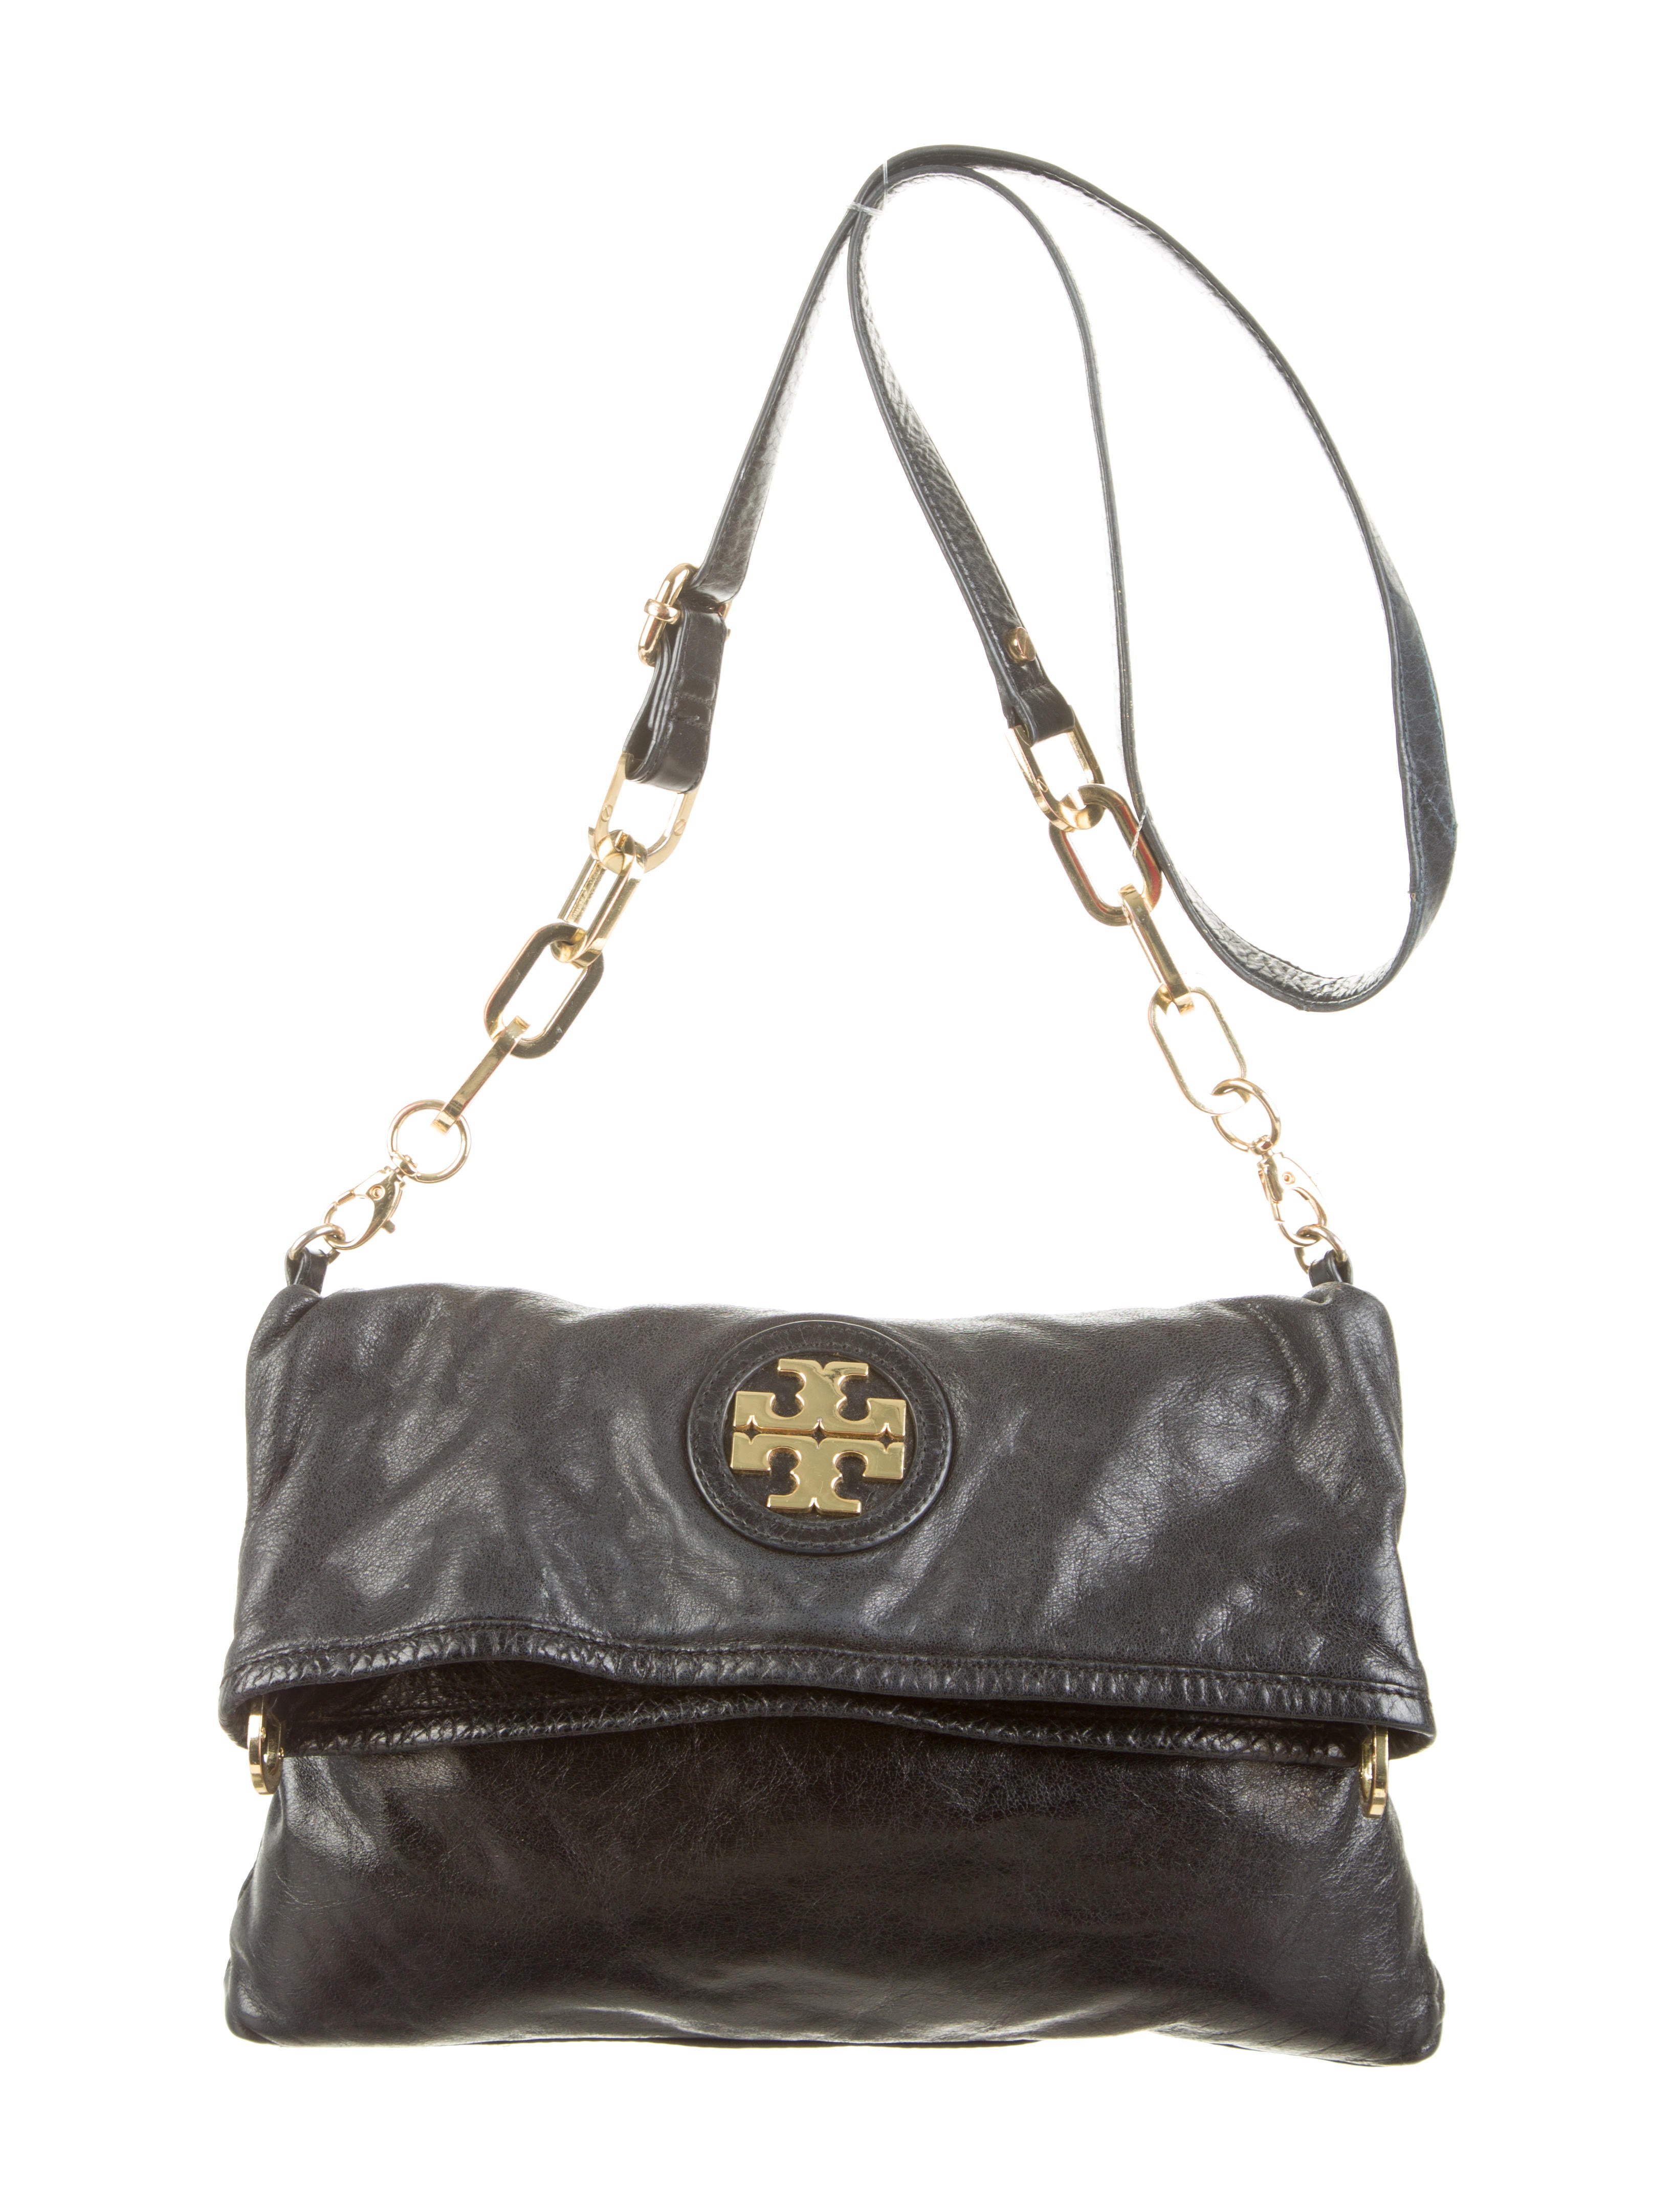 Visit Tory Burch to shop for Women's Clothing, Dresses, Designer Shoes, Handbags, Accessories & More. Enjoy Free Shipping & Returns on Every Order at skuleaswiru.cf